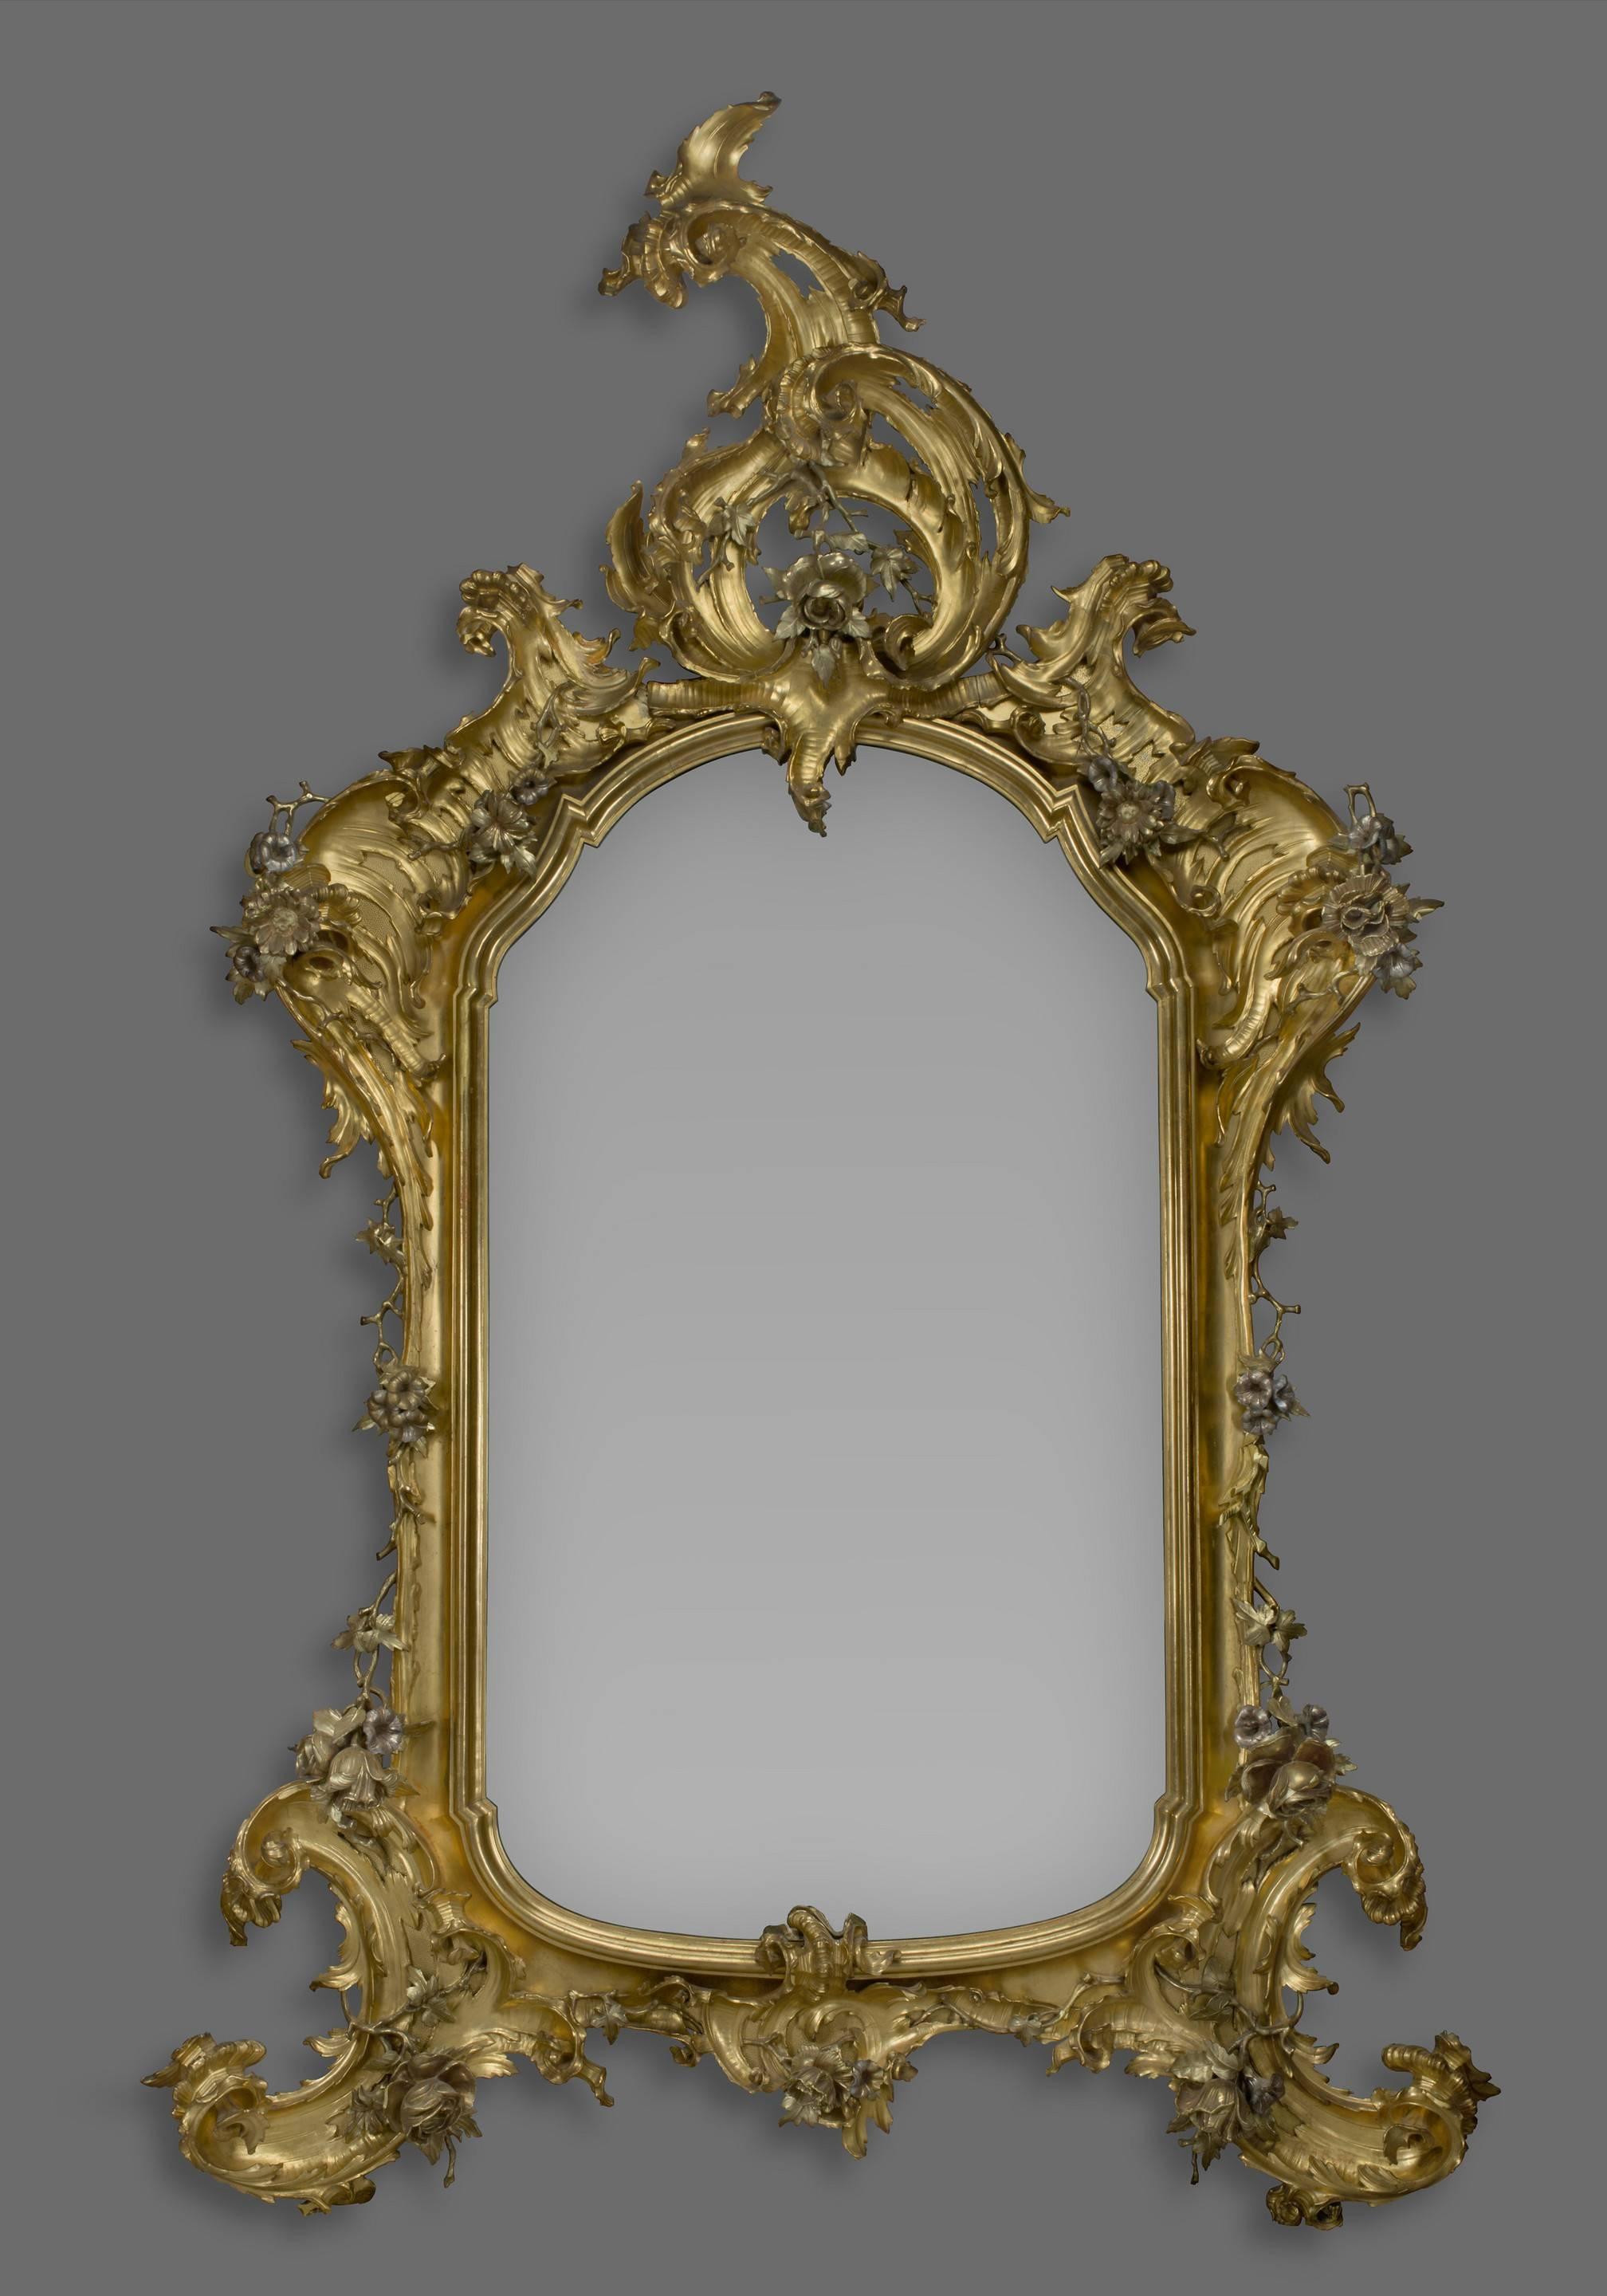 Hinges-Wood-Rococo - The Uk's Premier Antiques Portal - Online regarding Rococo Mirrors (Image 14 of 25)